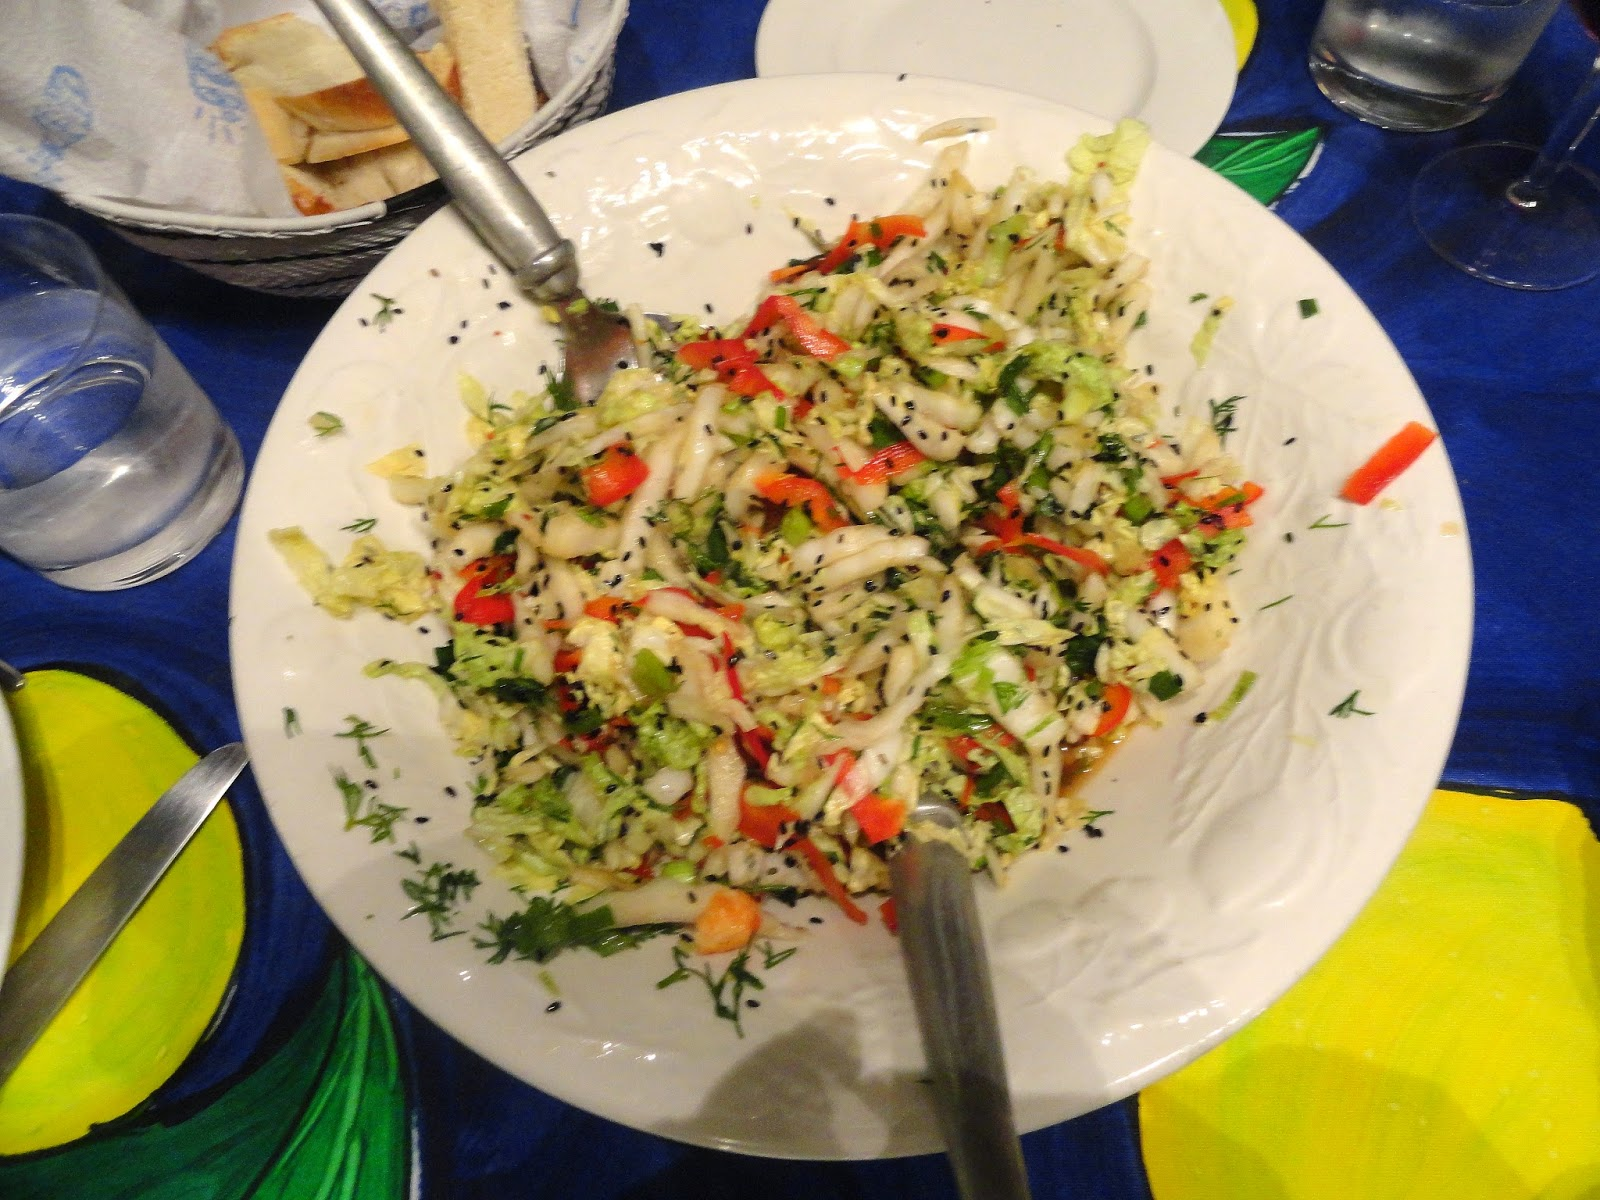 cabbage salad with delicious Asian flavours